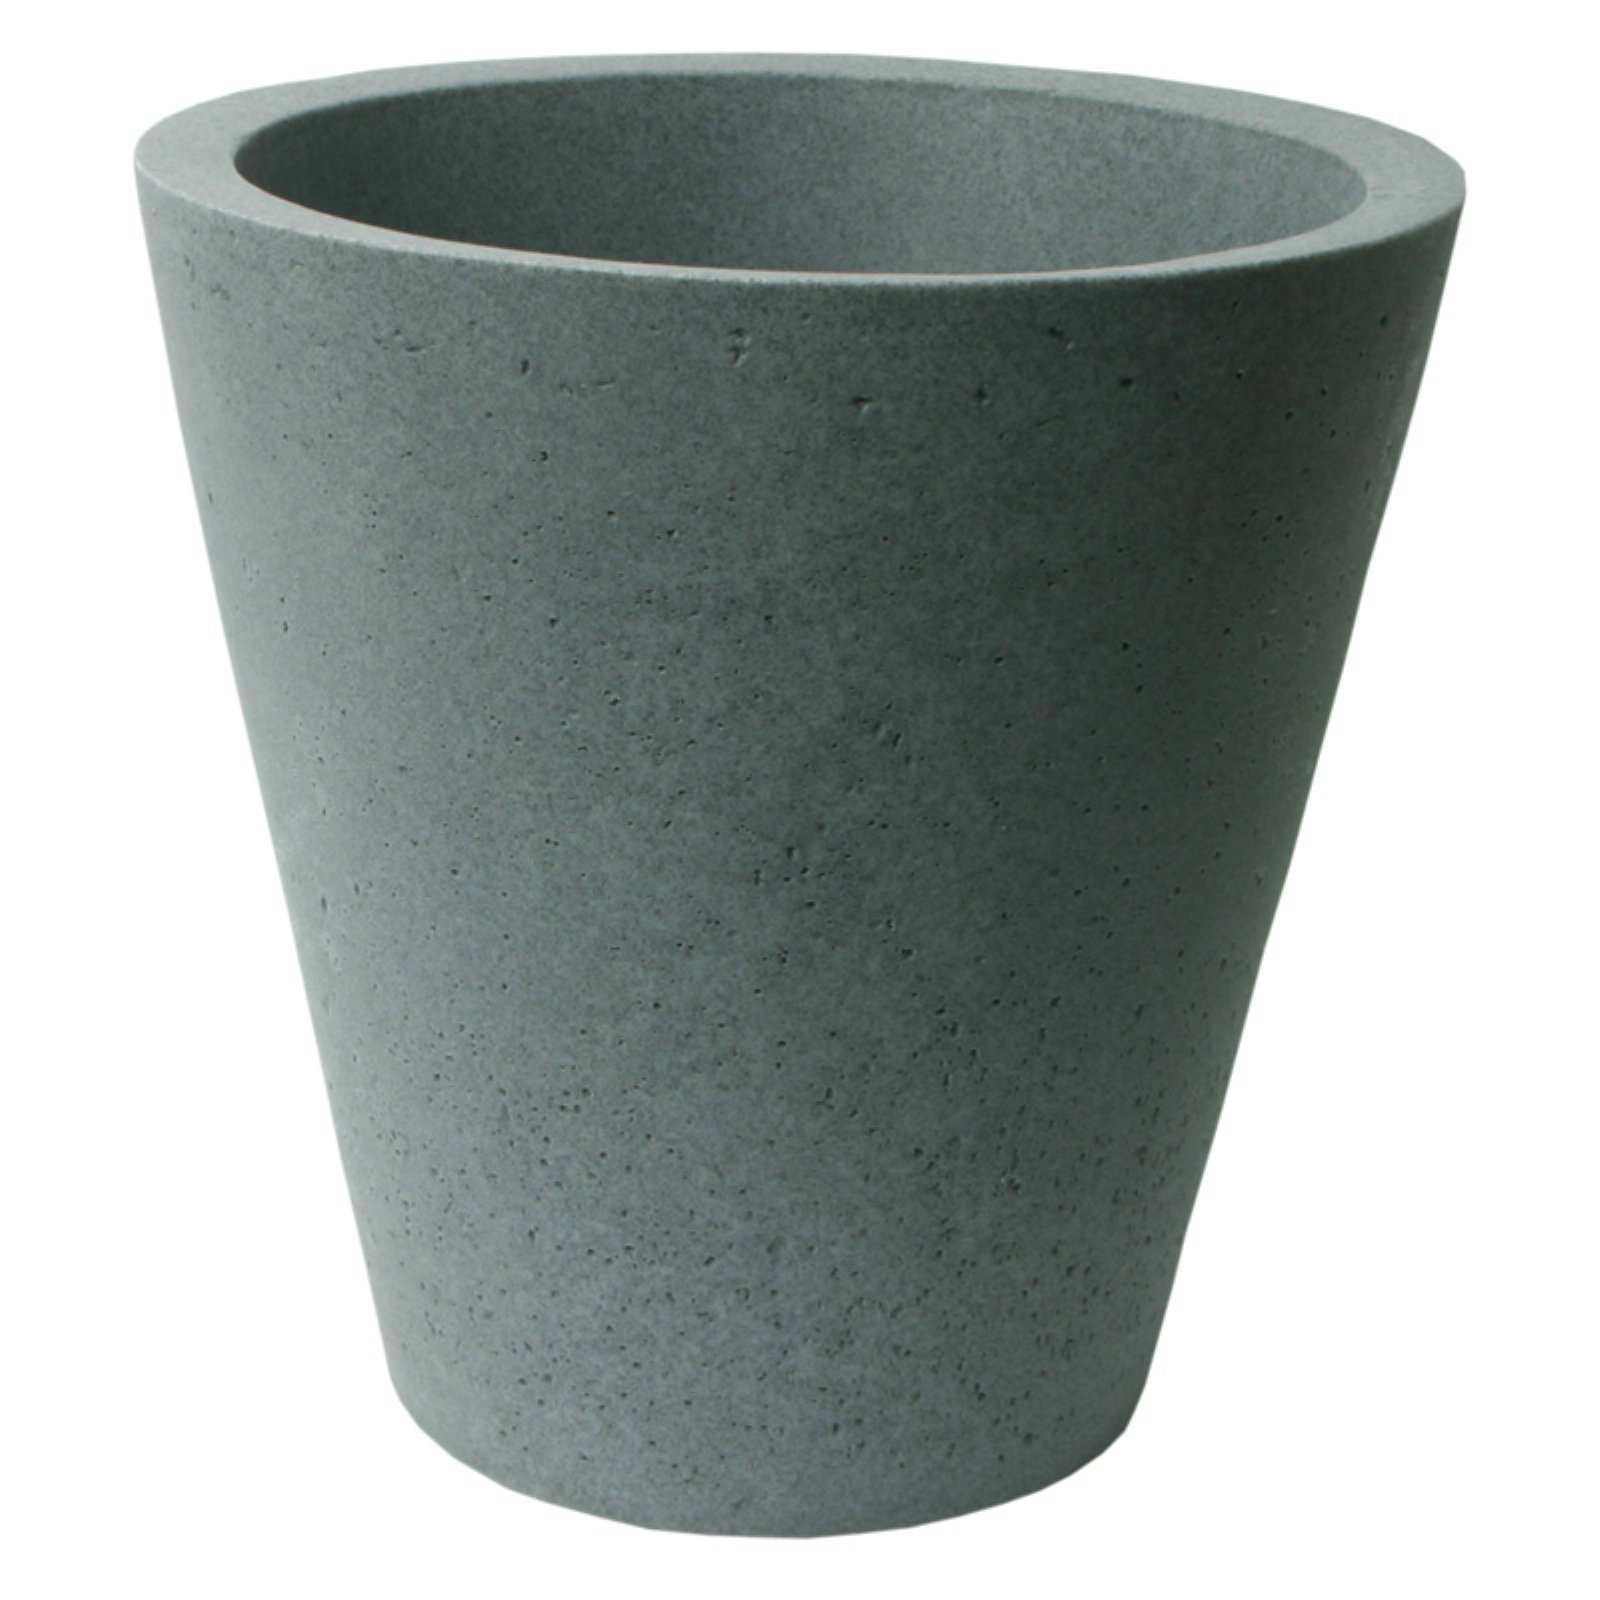 Algreen Crete Planter, Self-Watering Planter, 16.5-In. Height by 16-In., Concrete Texture, Charcoalstone